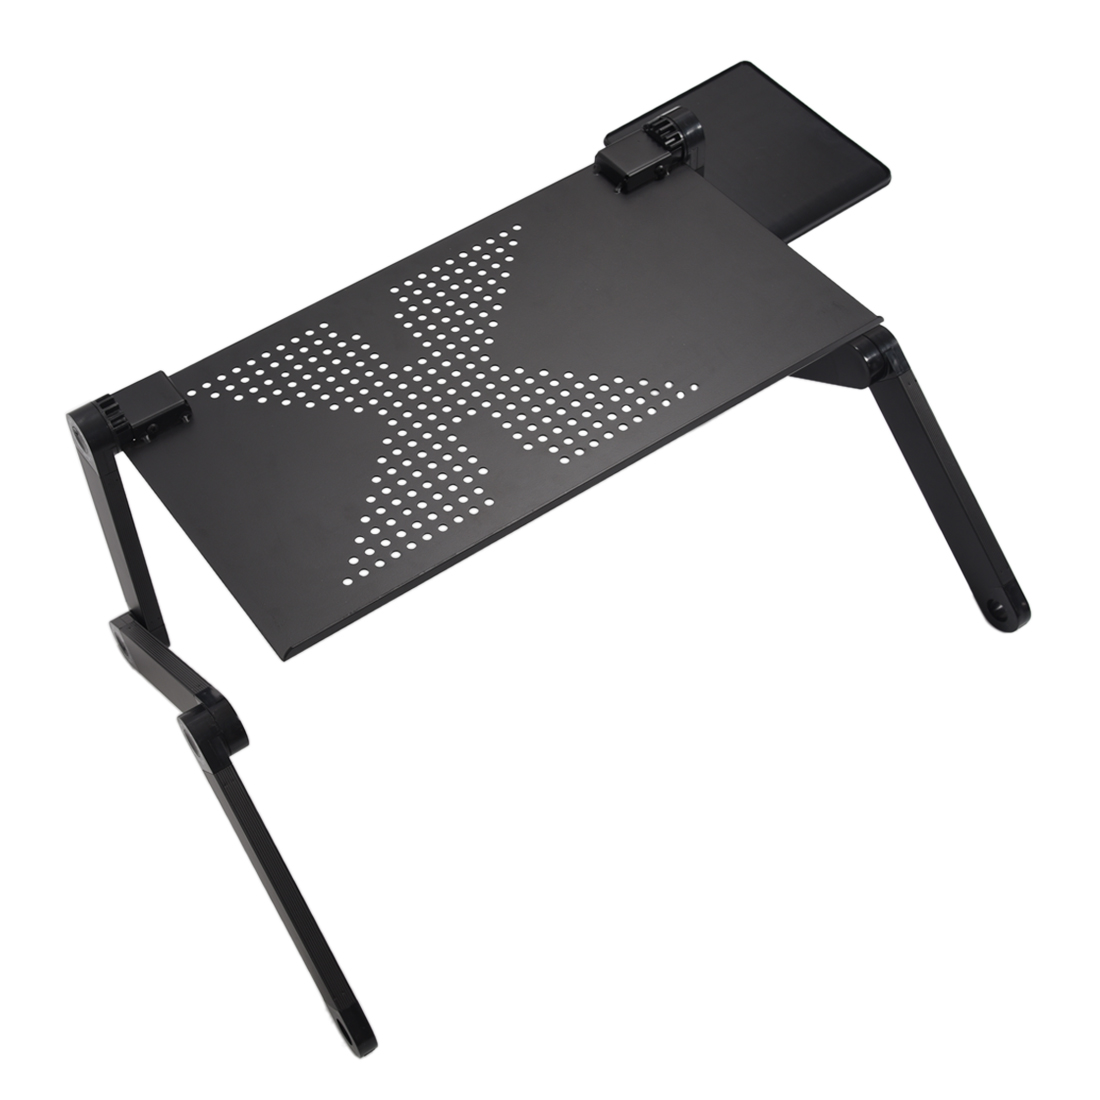 Foldable Computer Desk Portable Laptop Stand Bed Adjustable Laptop Desk Computer Table Stand Tray For Sofa Bed Black